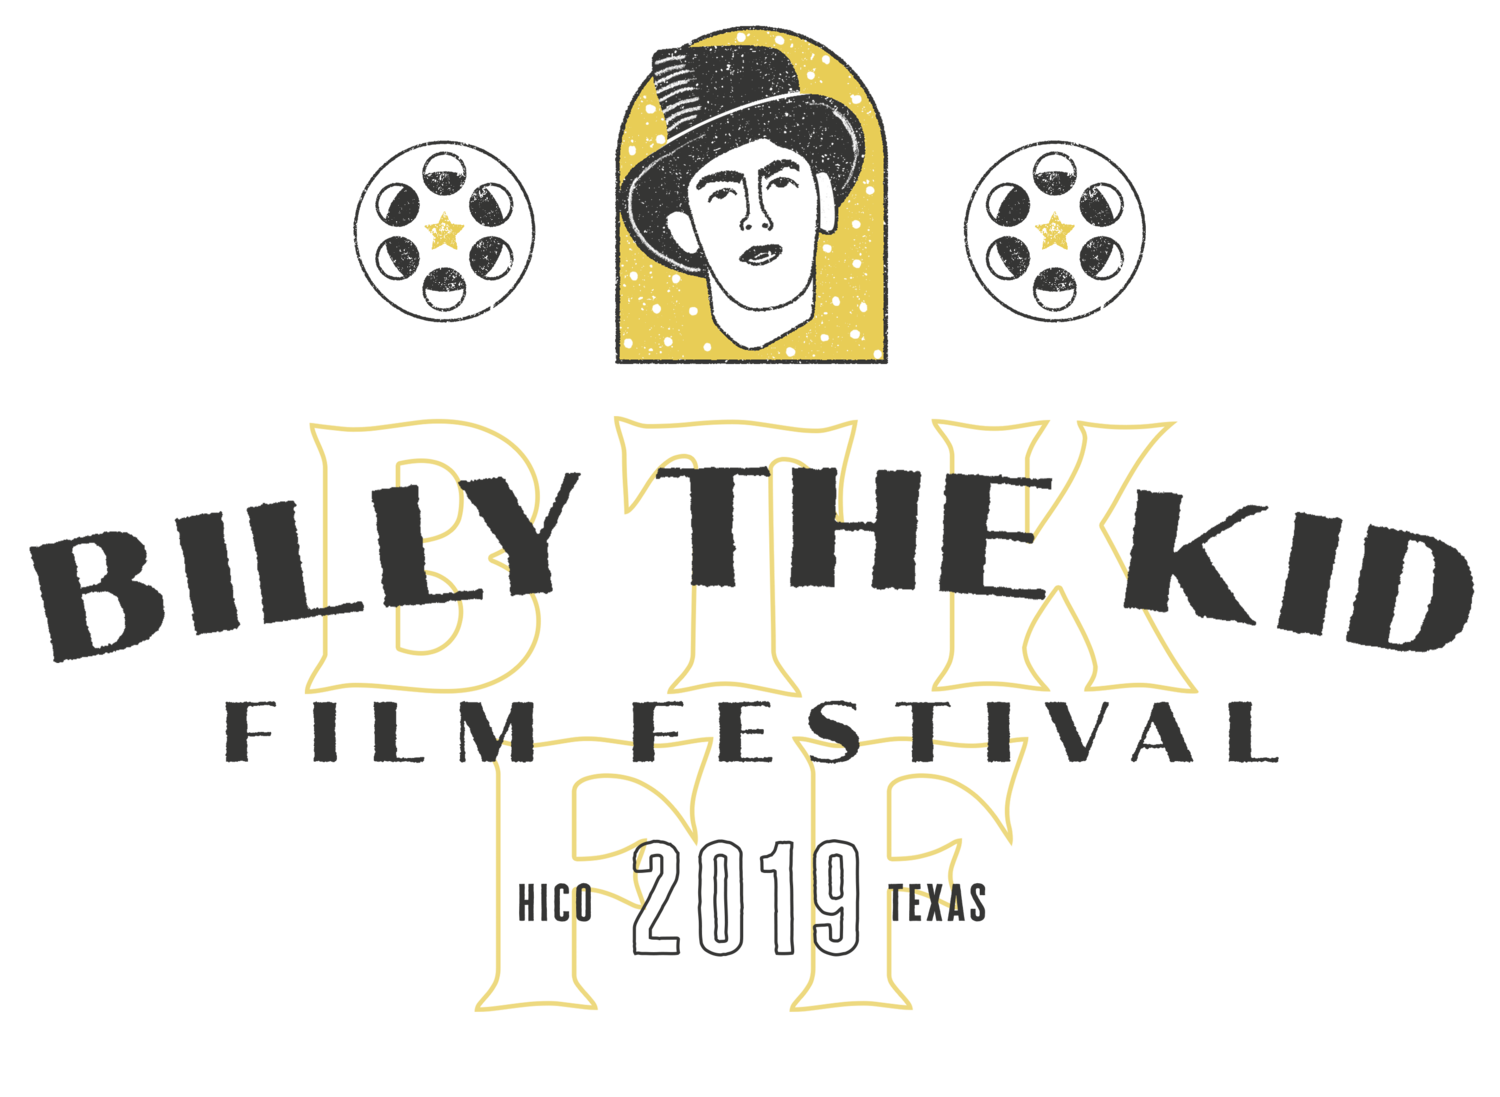 Billy The Kid Film Festival